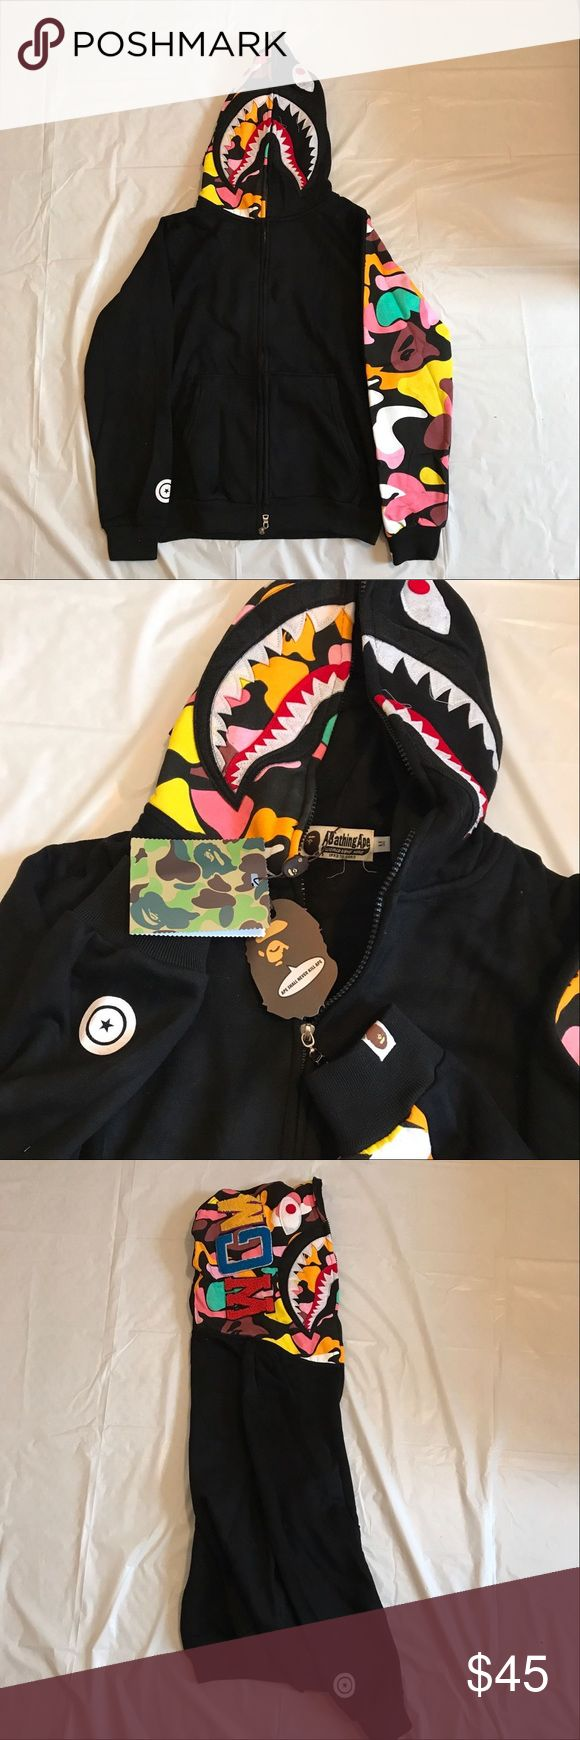 Bape hoodie full zip men size M-L Brand new come with tag and bag. Size available:M-L EYES:Fit little smaller,recommend order one size bigger. Ship by usps the same busness day if u order before 12:00pm. Jackets & Coats Lightweight & Shirt Jackets